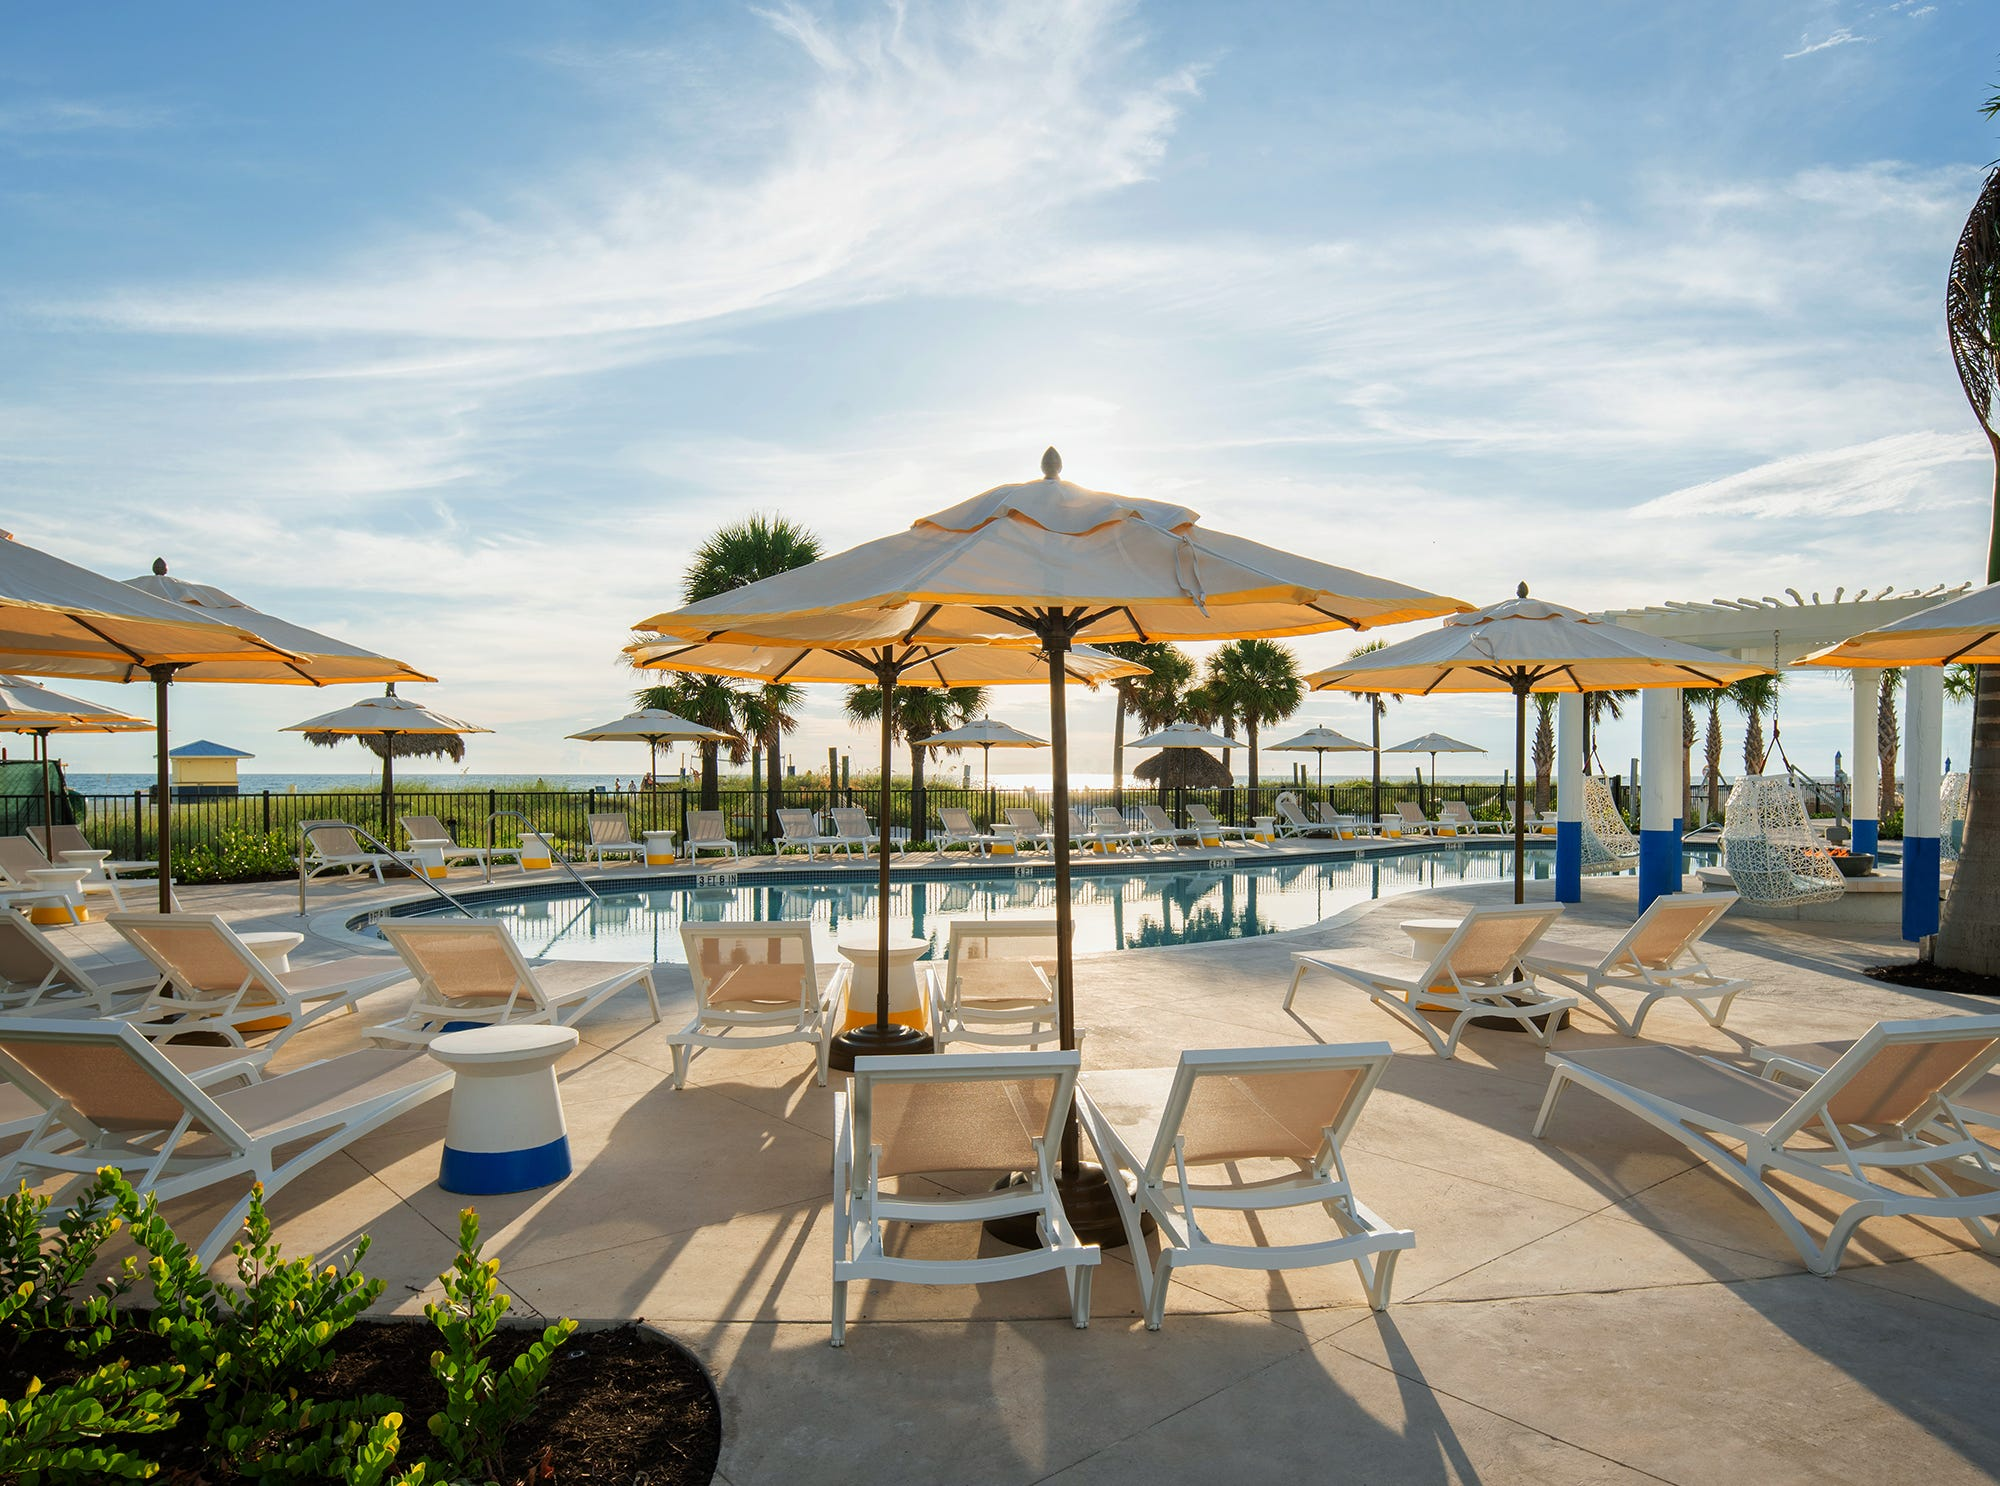 Sirata Beach Resort in St. Pete Beach, Florida, also has a north pool area.